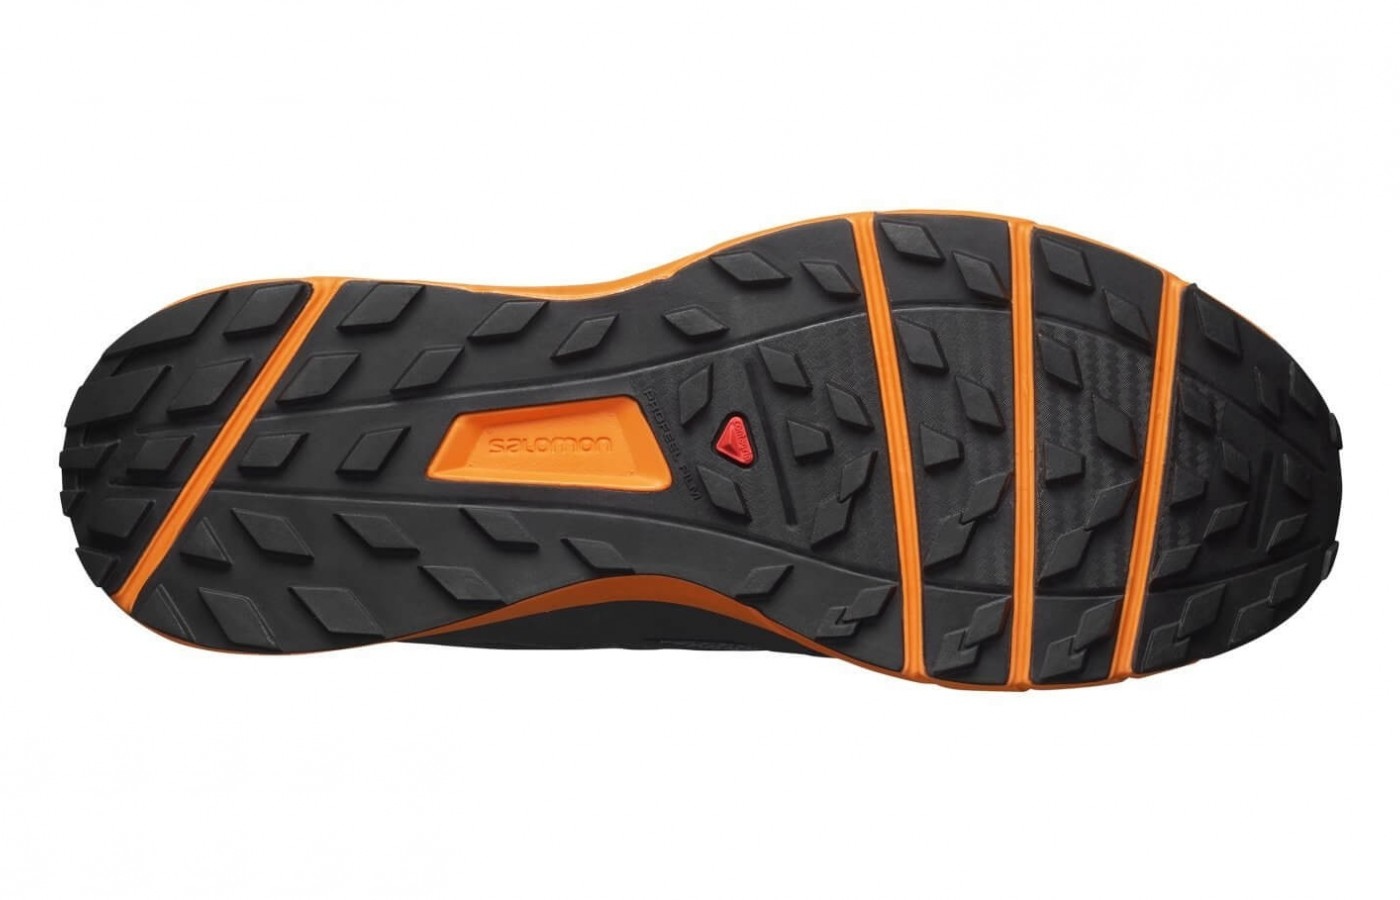 This lugged outsole grips onto any surface.